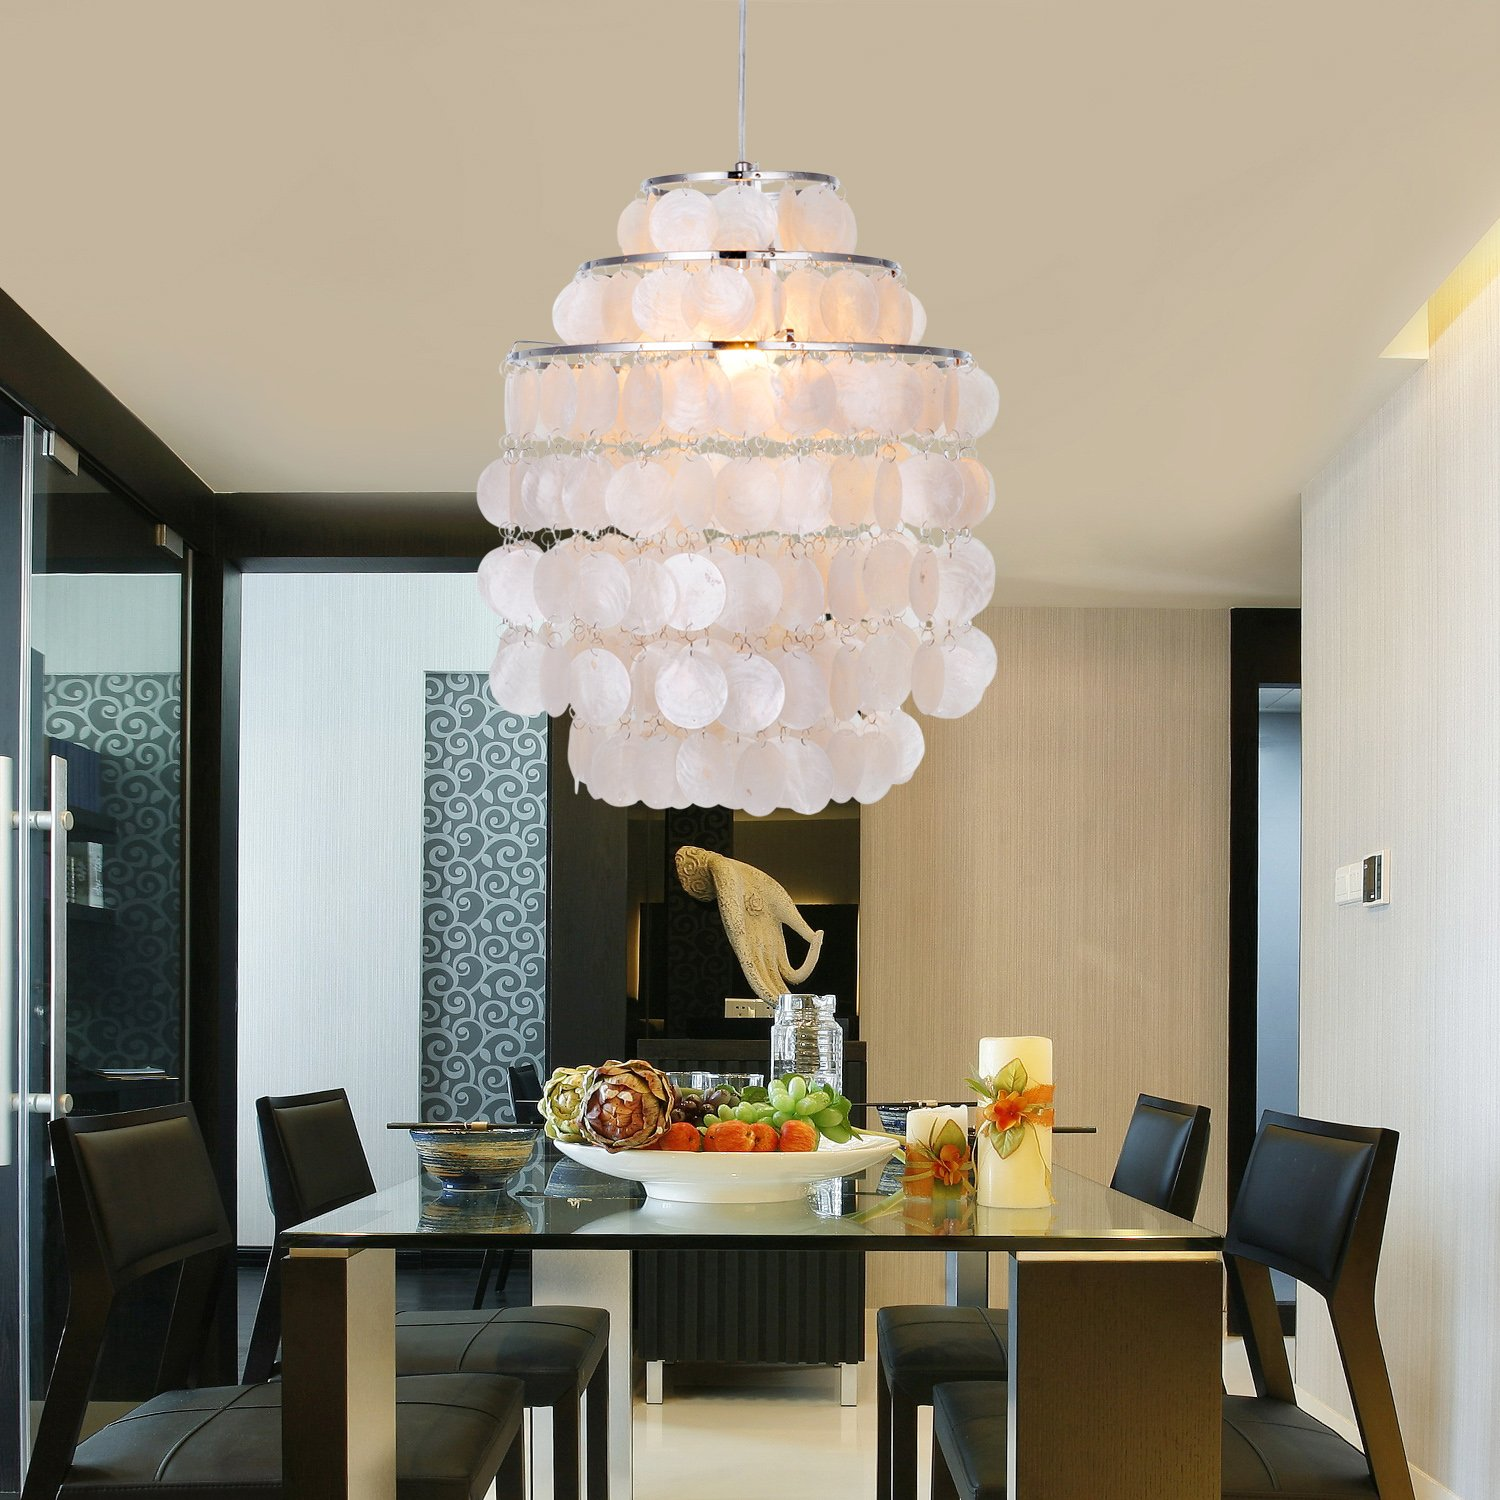 LightInTheBox Modern White Shell Pendant Chandelier Mini Style